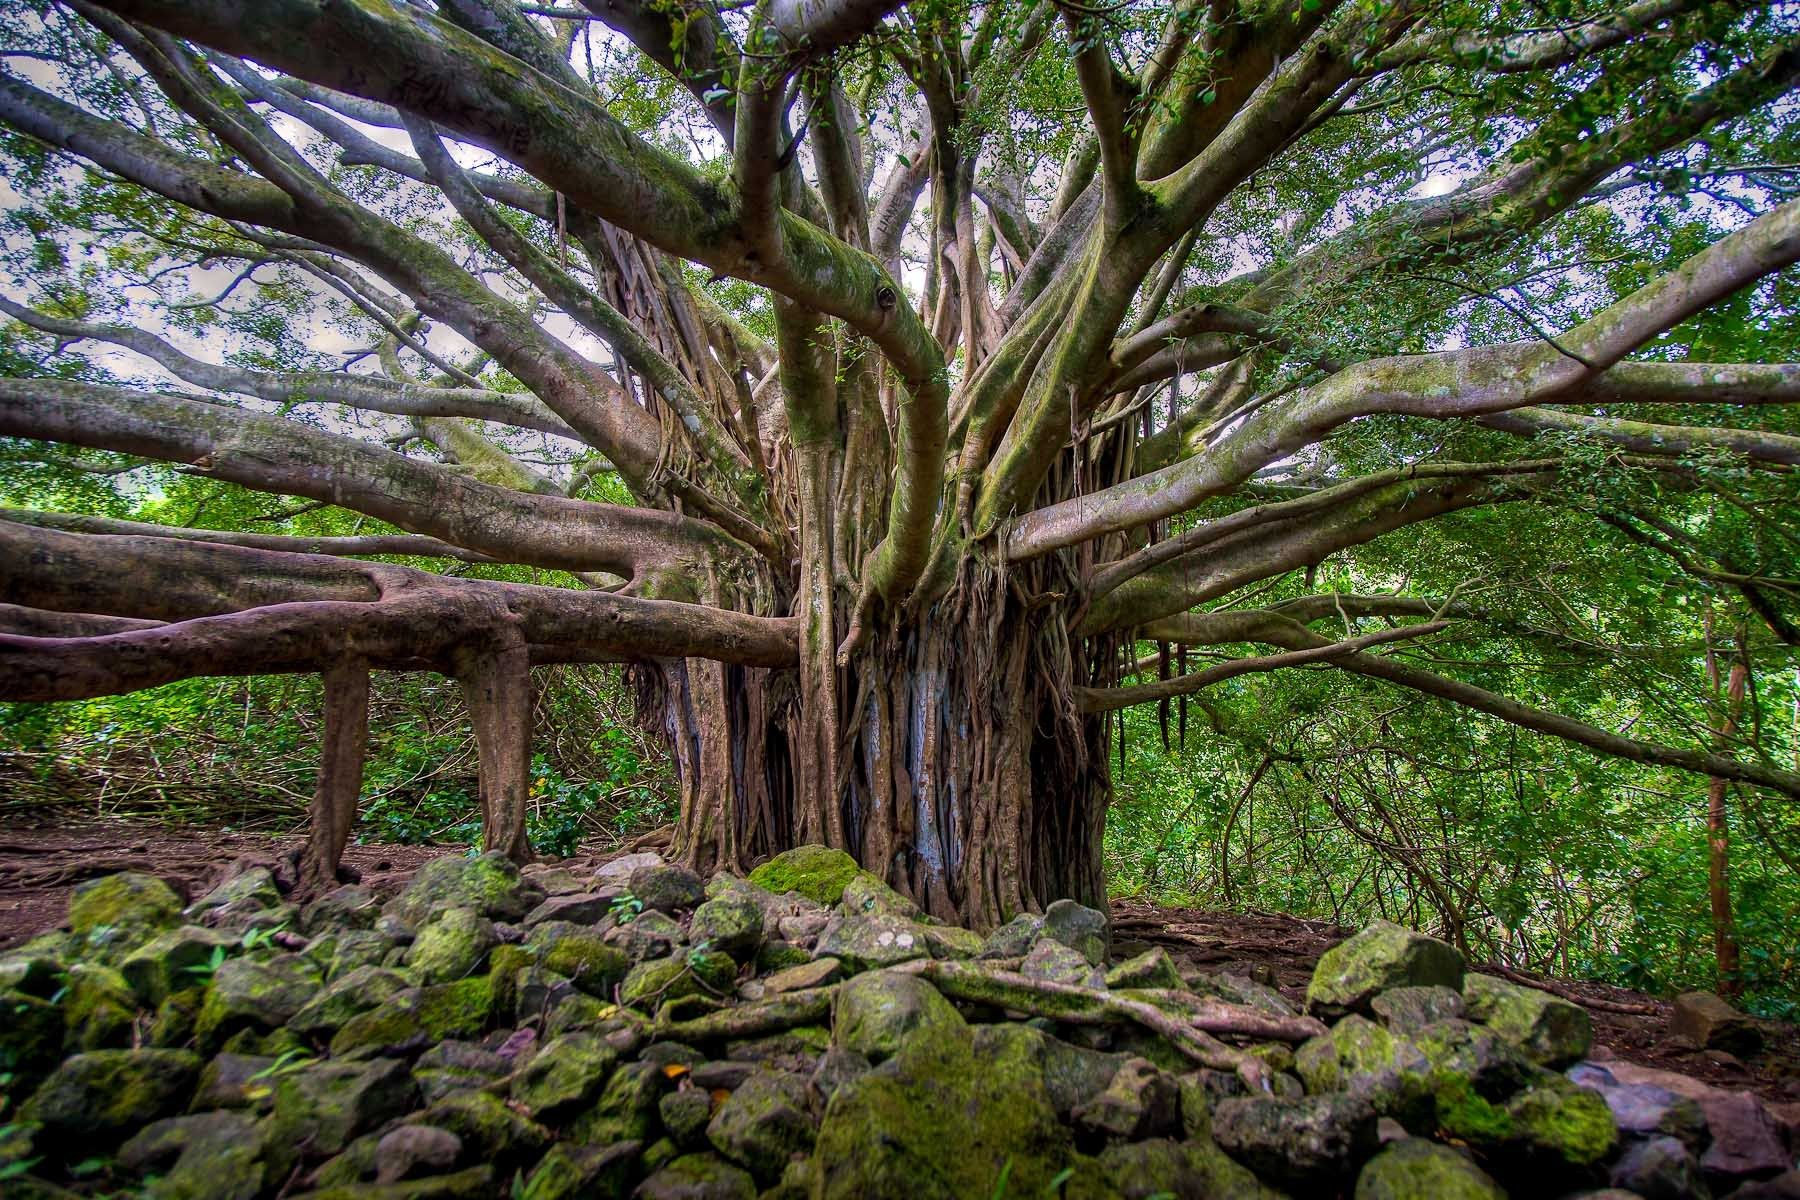 1hawaii_2012_8877hdr.jpg